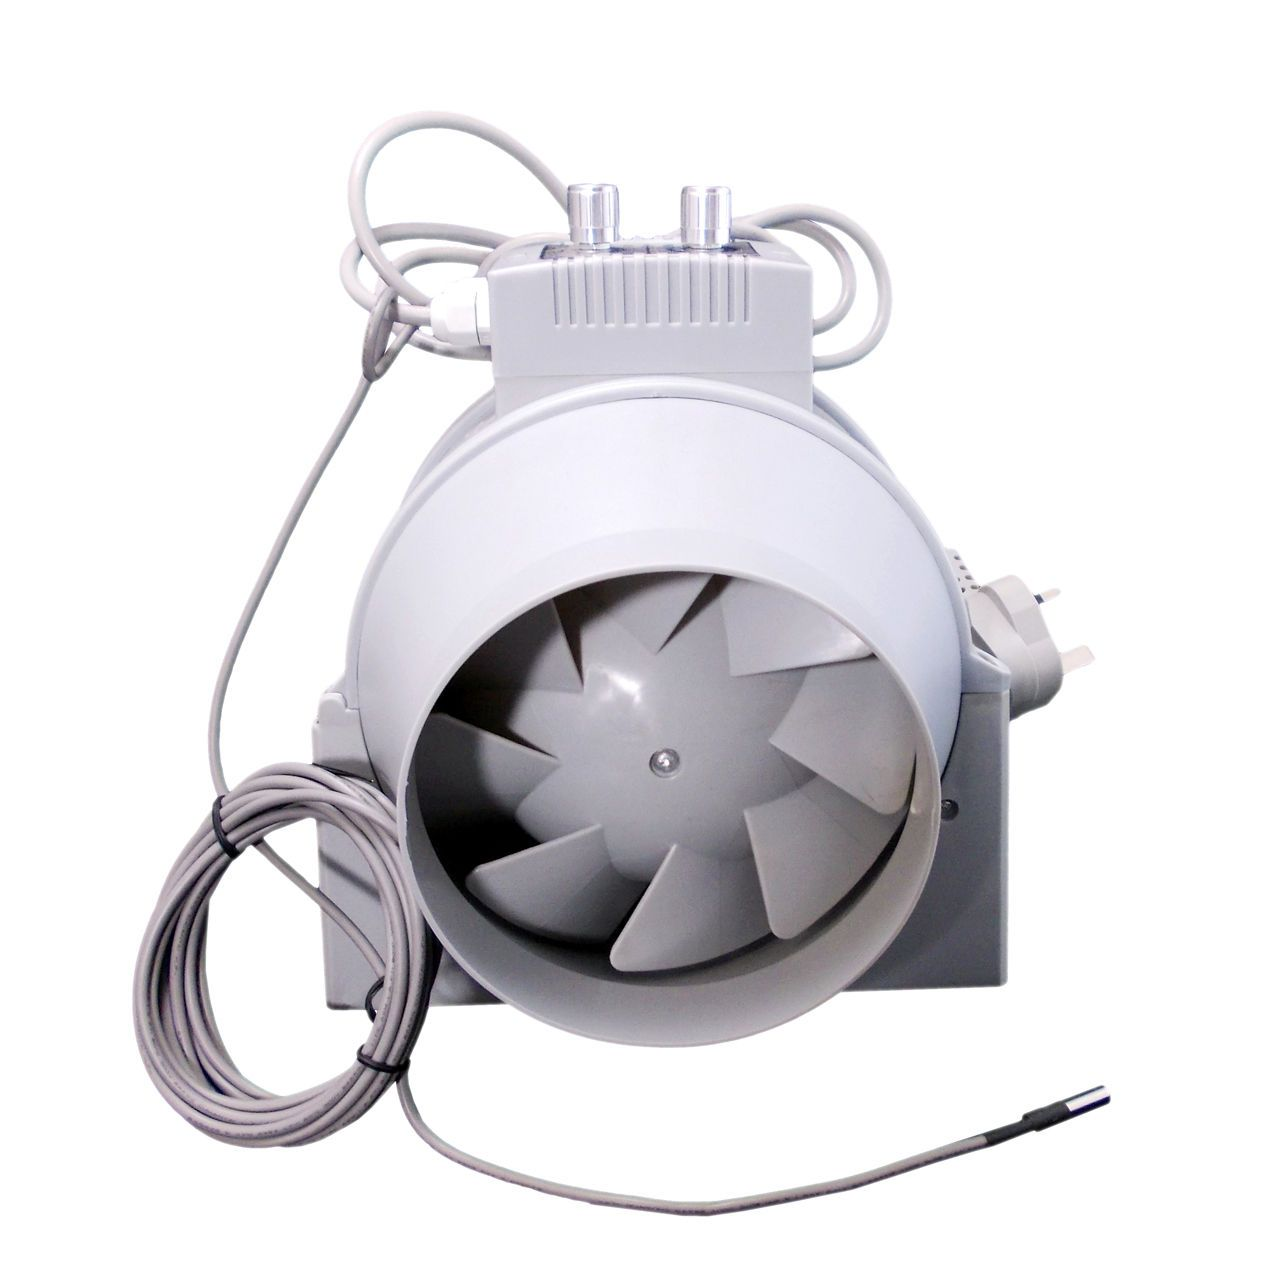 High Heat Inline Fan : Inline duct fan with temperature control all sizes